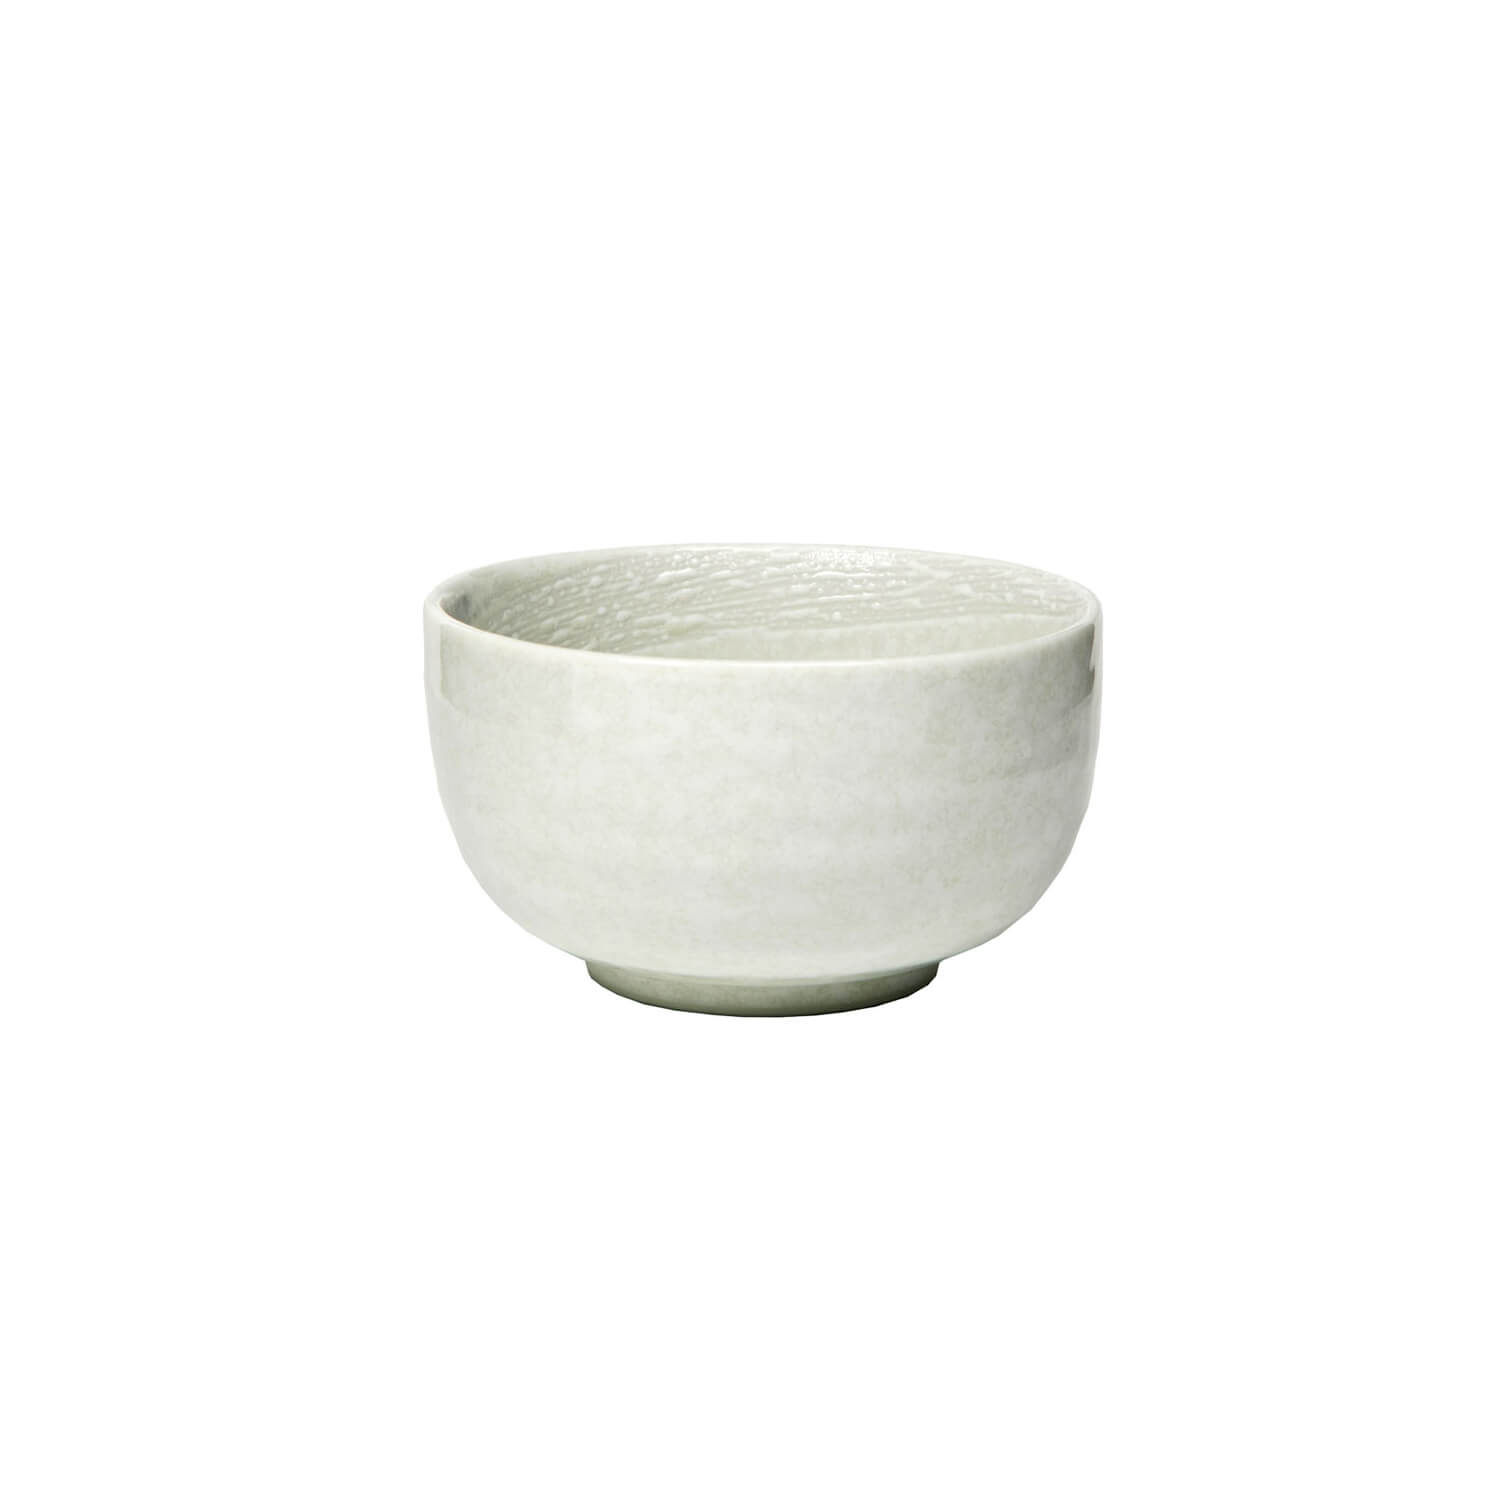 Original Japan matcha bowl - Utsuku